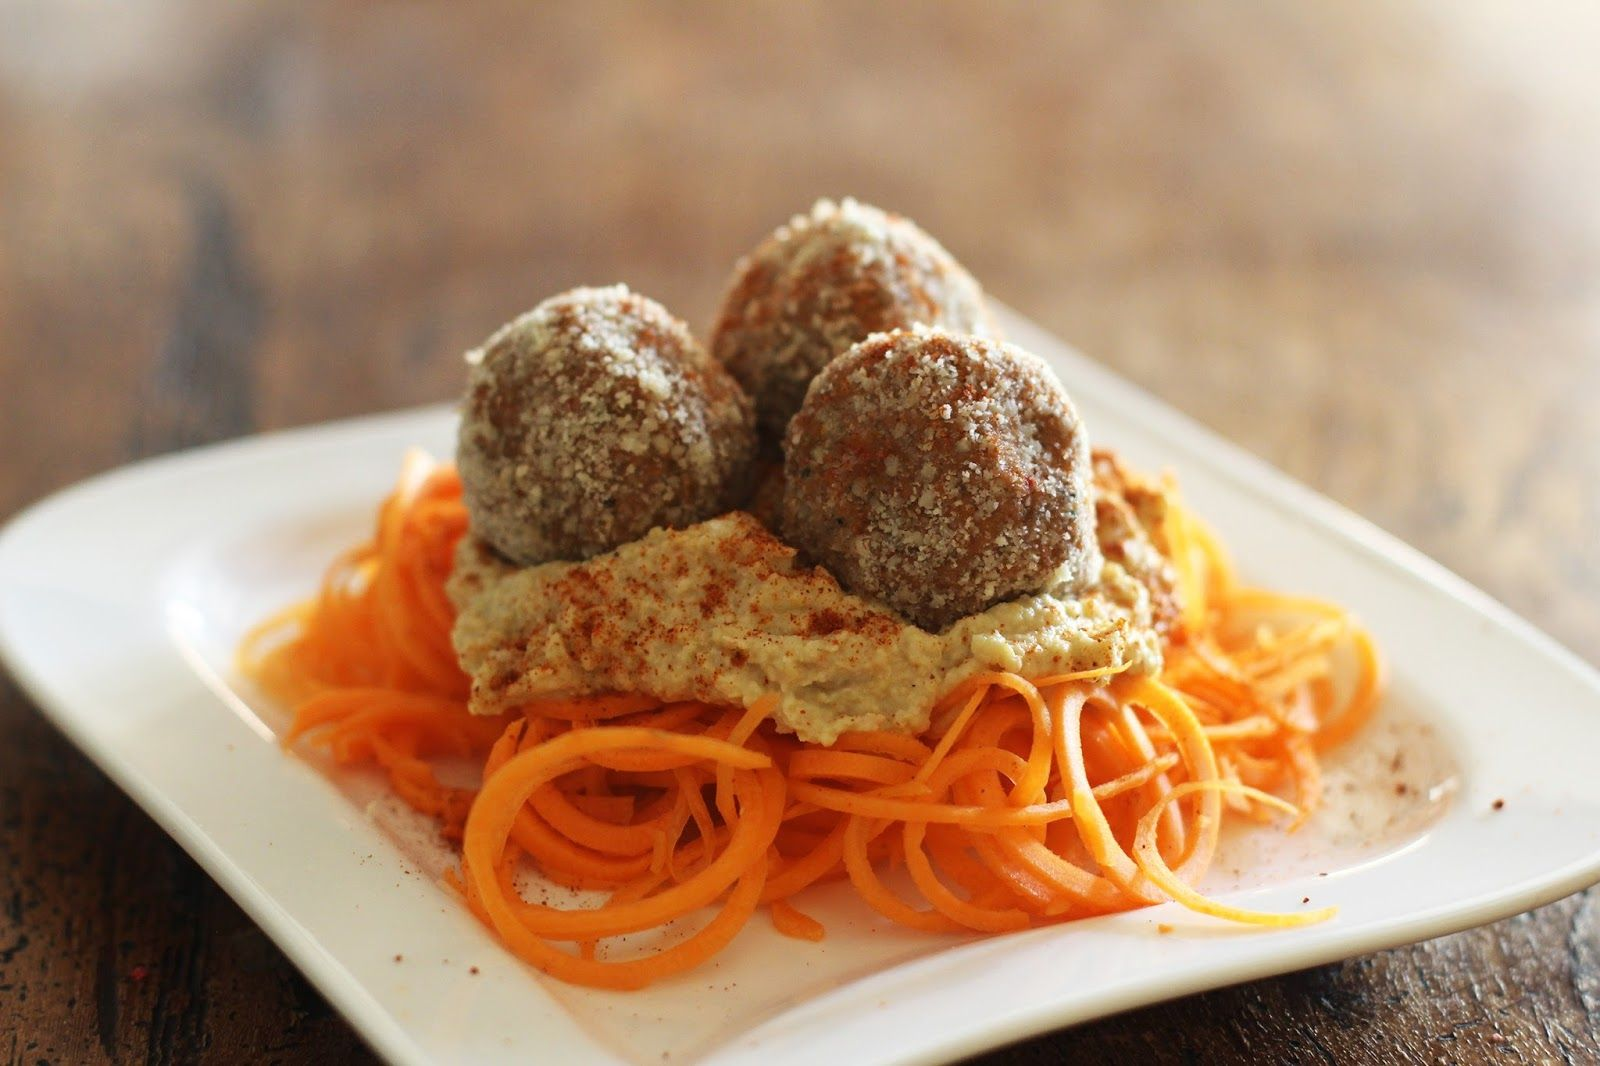 Raw Mushroom Walnut Meatballs with Hummus and Carrot Noodles - Vegan, Gluten Free, Delicious!